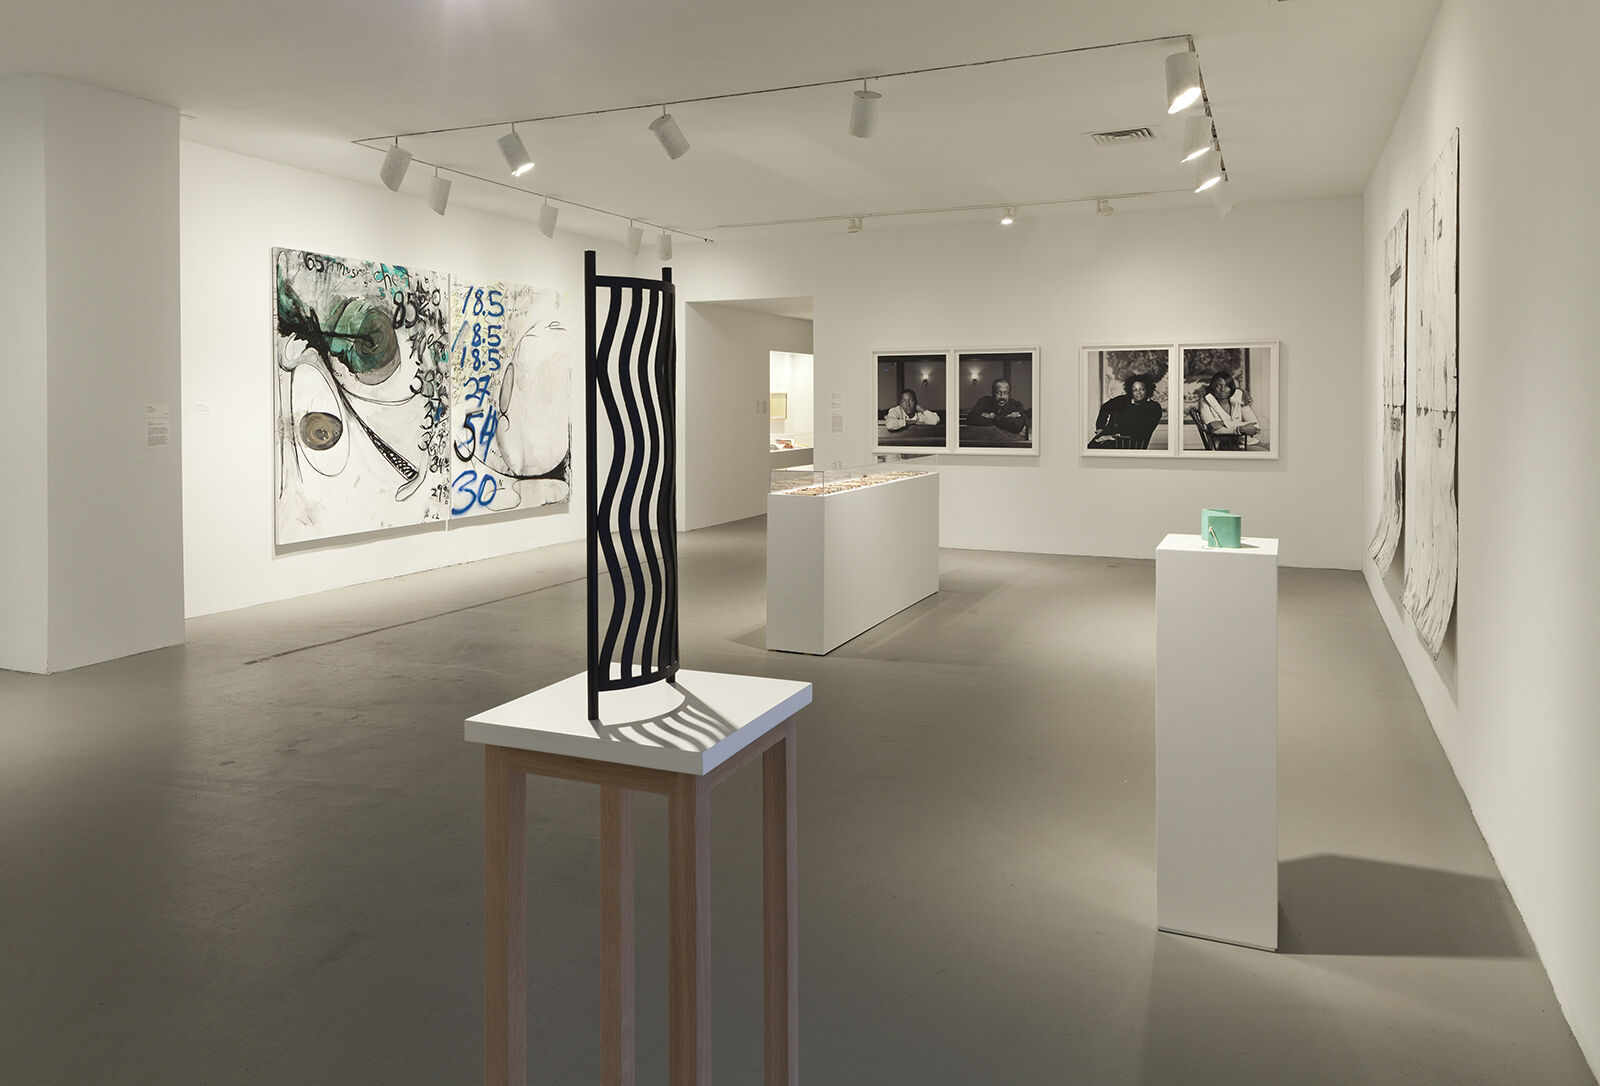 An exhibition gallery with a sculpture on display and works of art on the walls.